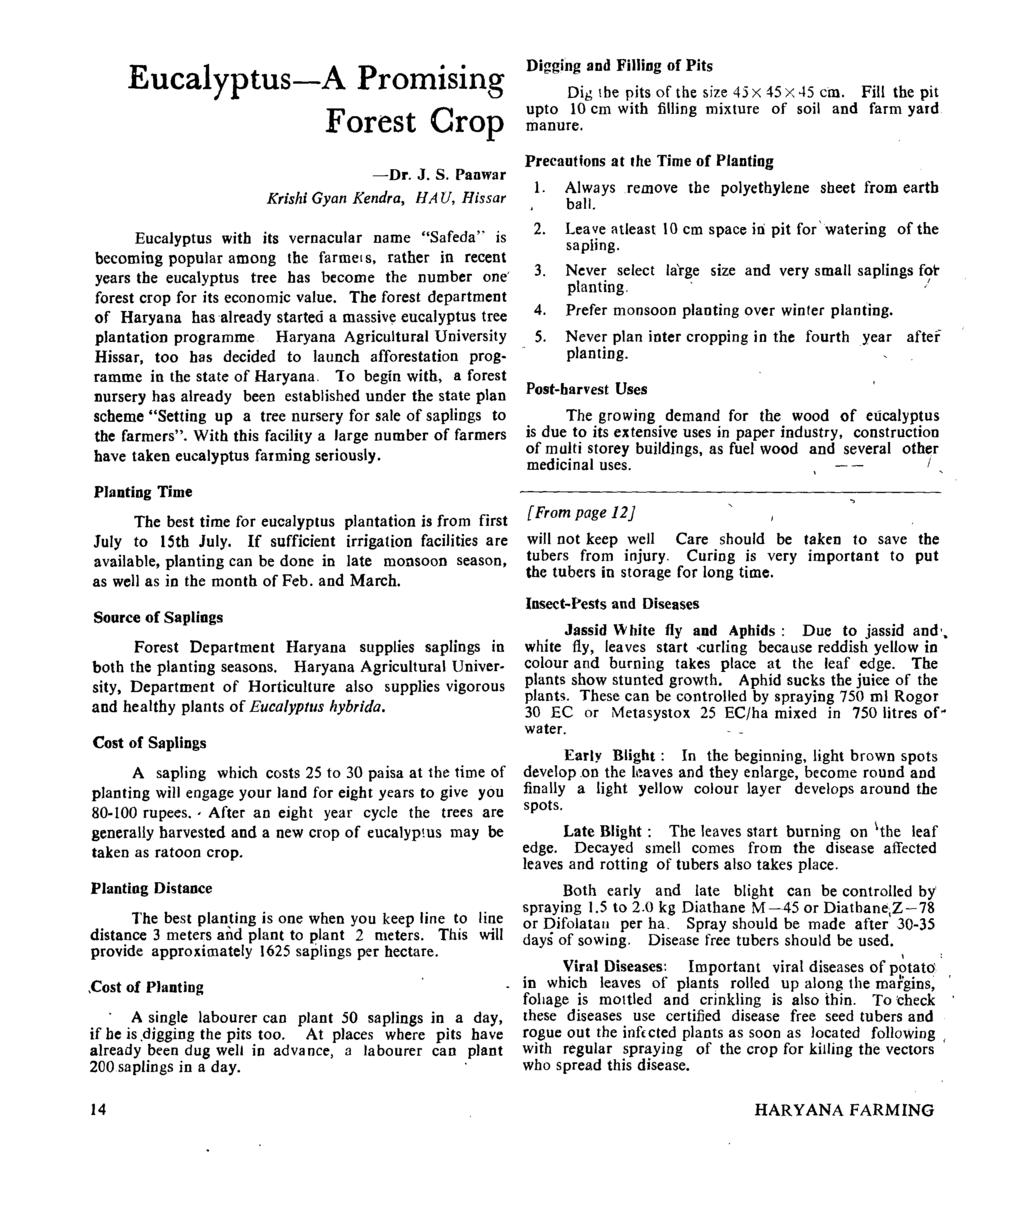 Eucalyptus-A Promising Forest Crop -Dr. J. S.